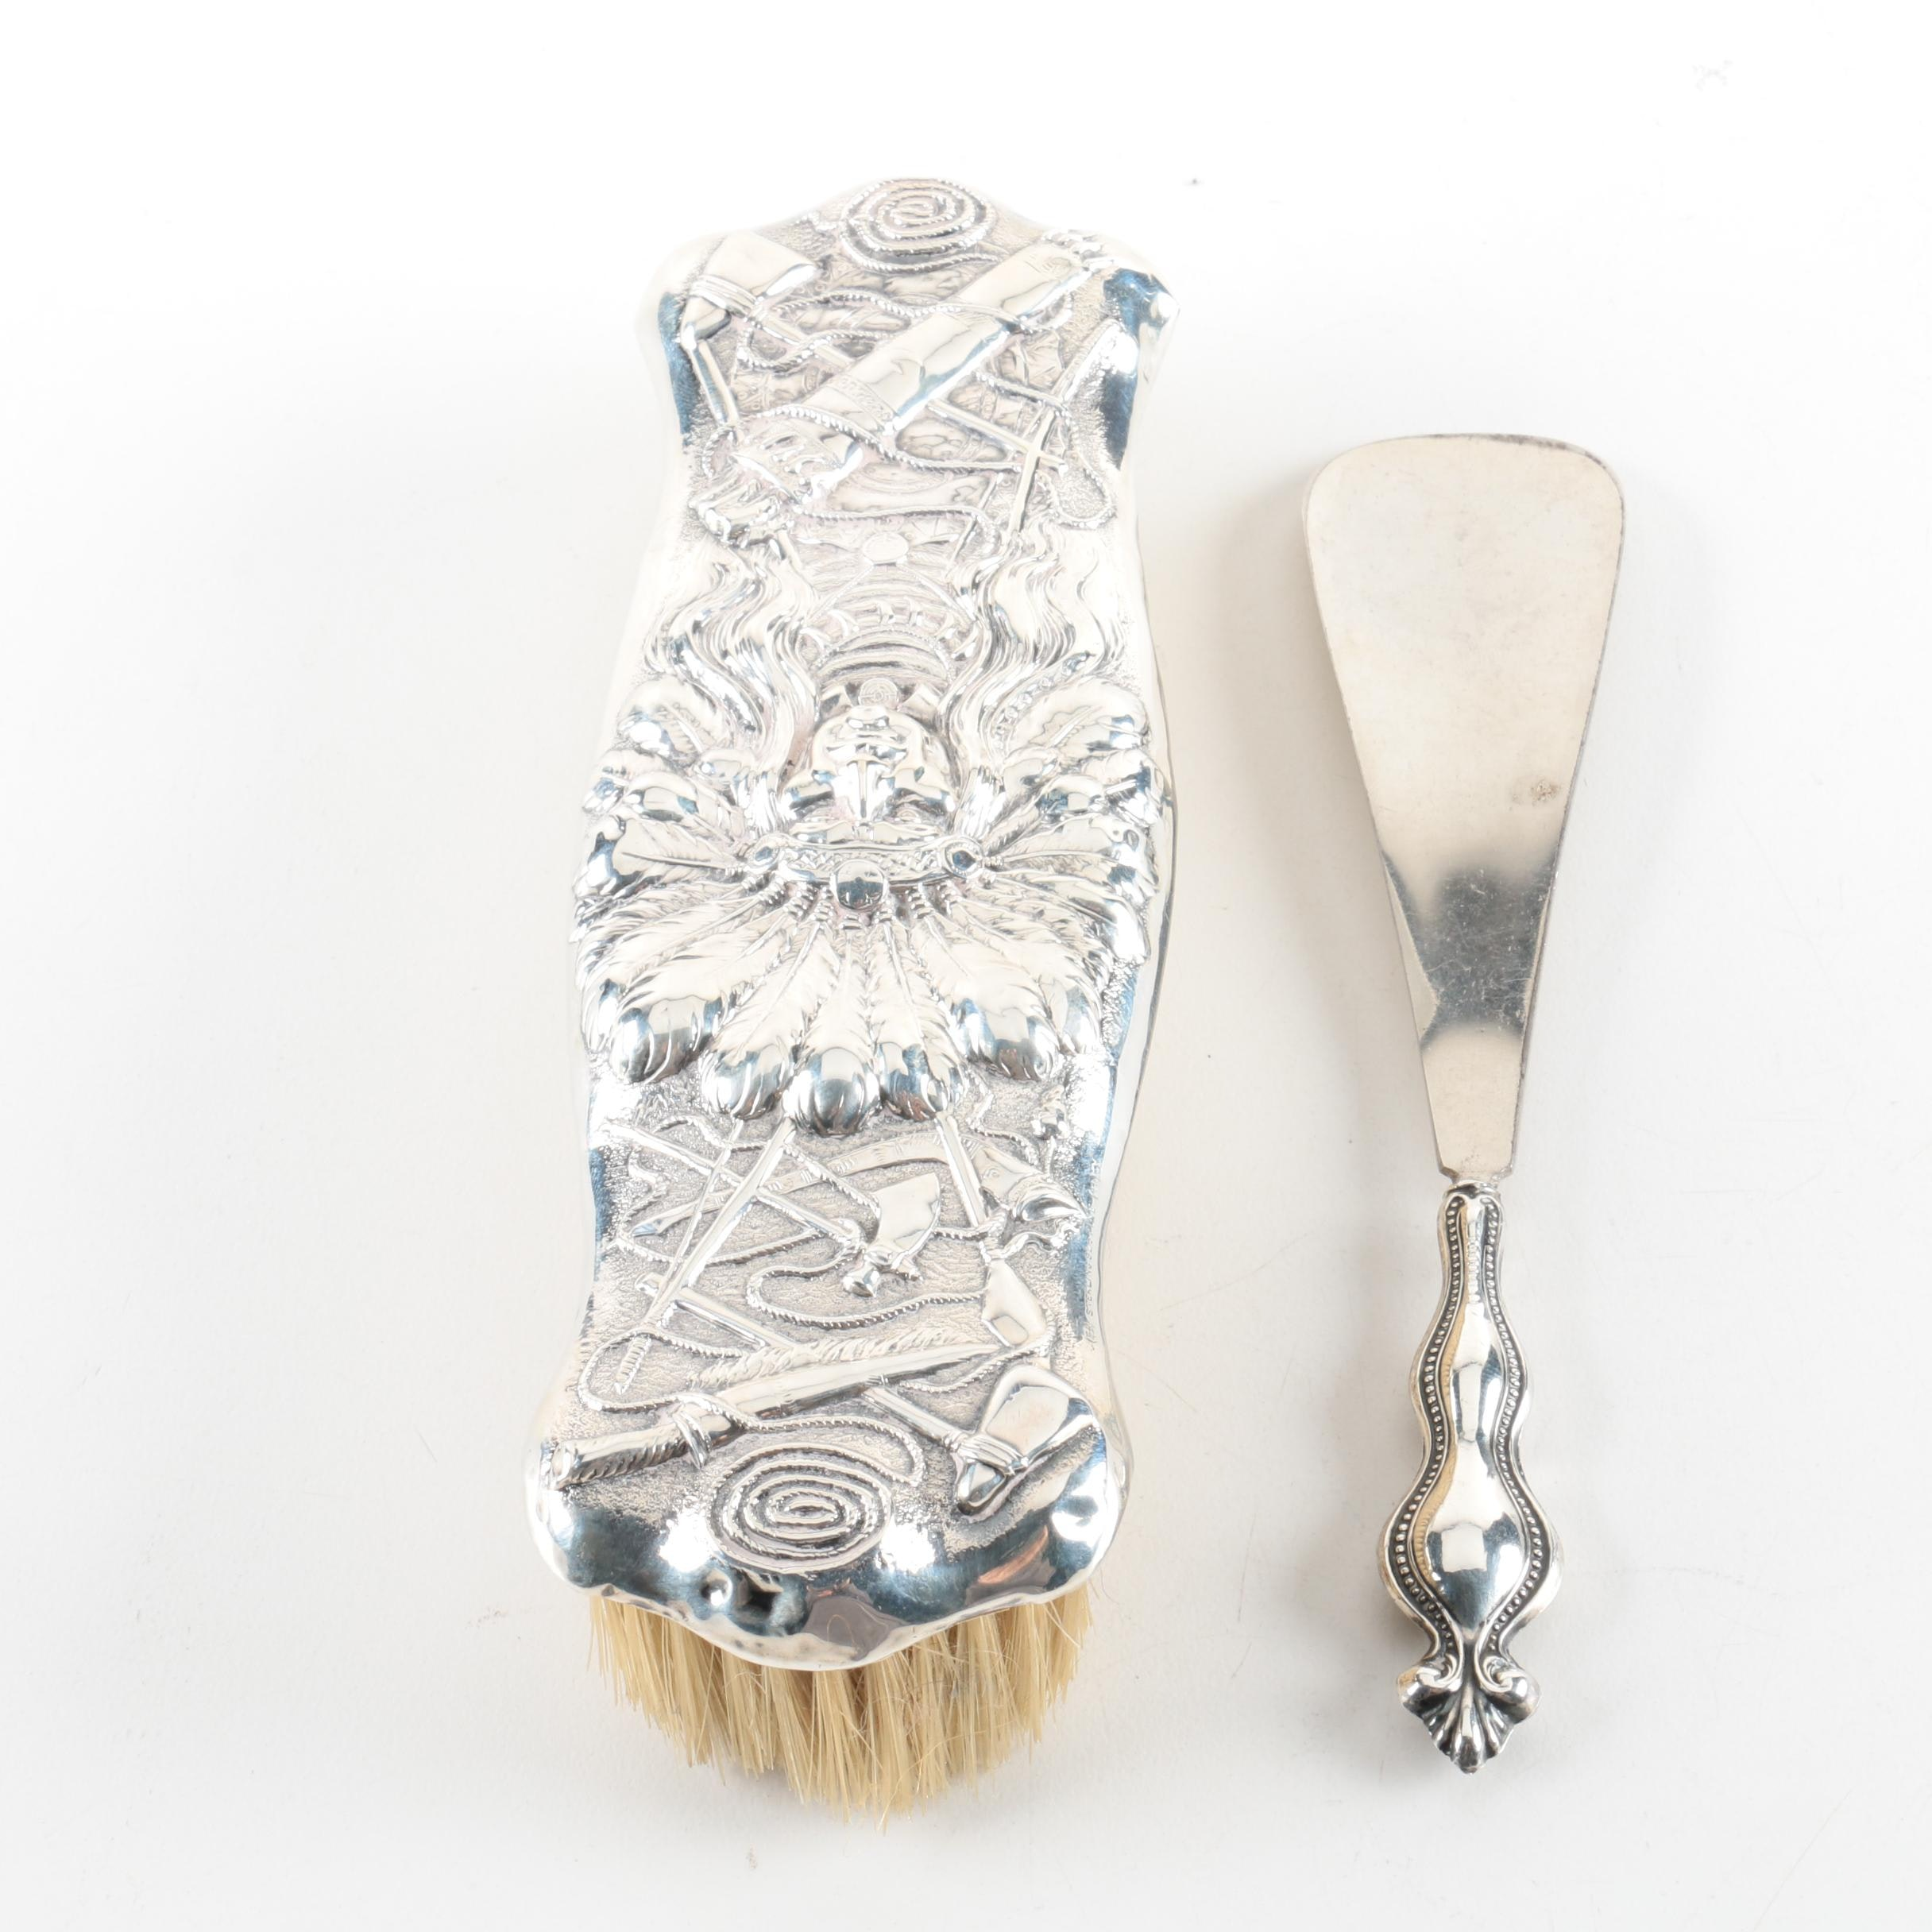 Unger Brothers Native American Motif Sterling Clothes Brush with Shoehorn